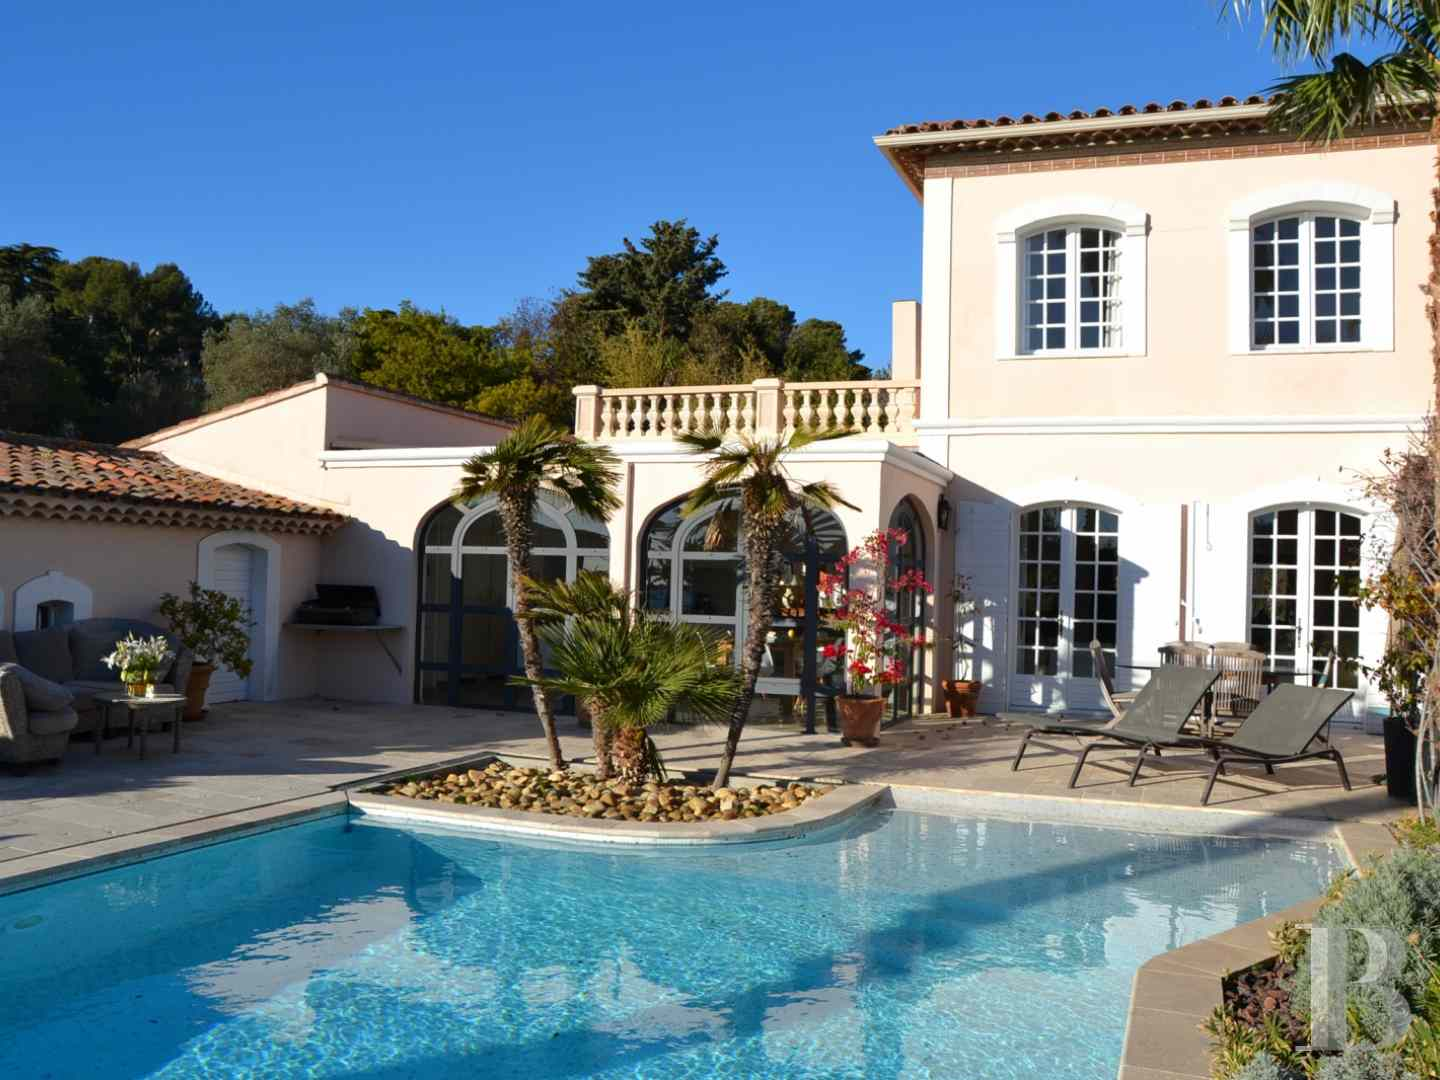 property for sale France provence cote dazur residences 20th - 9 zoom